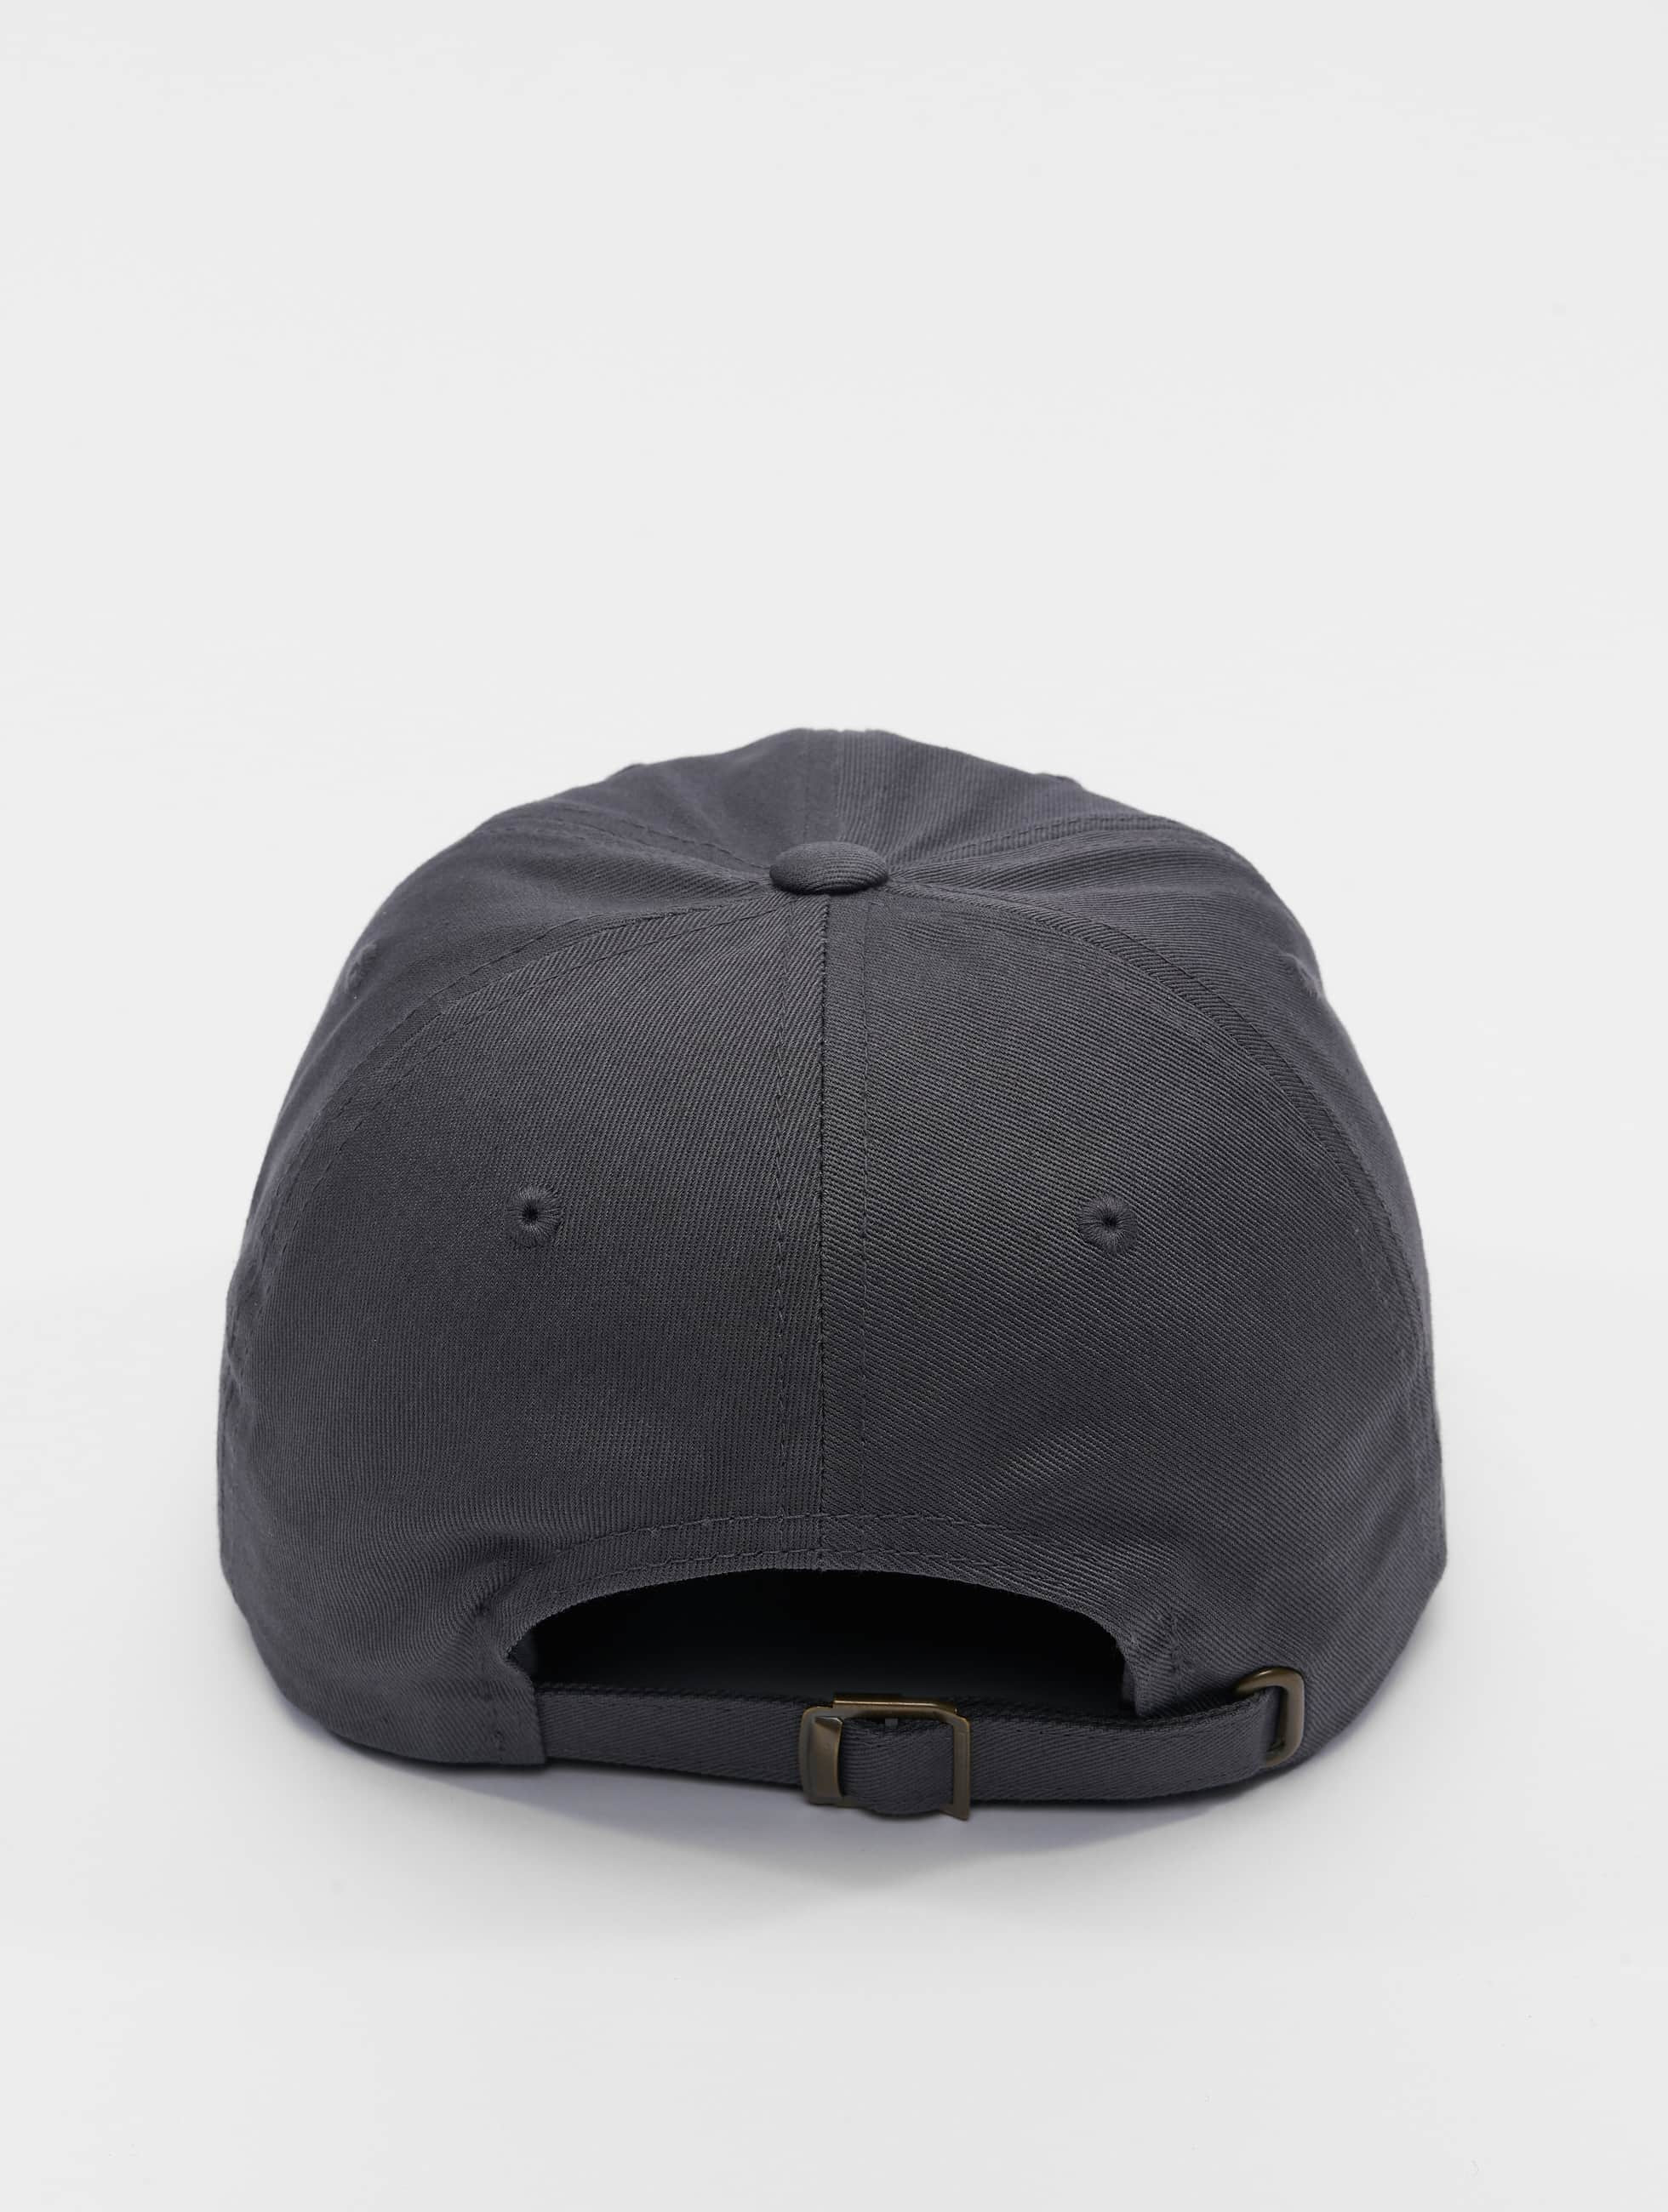 Flexfit snapback cap Low Profile Cotton Twil grijs